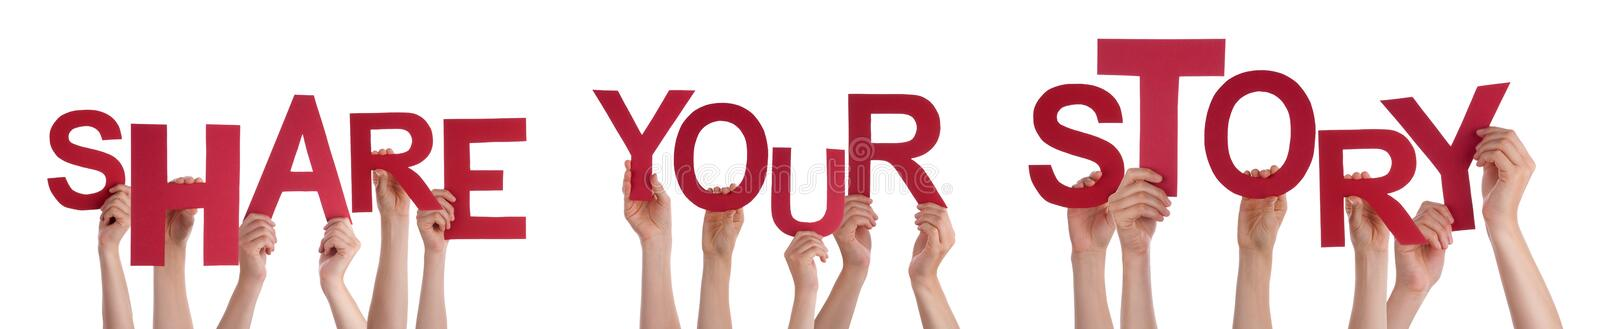 People Hands Holding Red Word Share Your Story royalty free stock photo